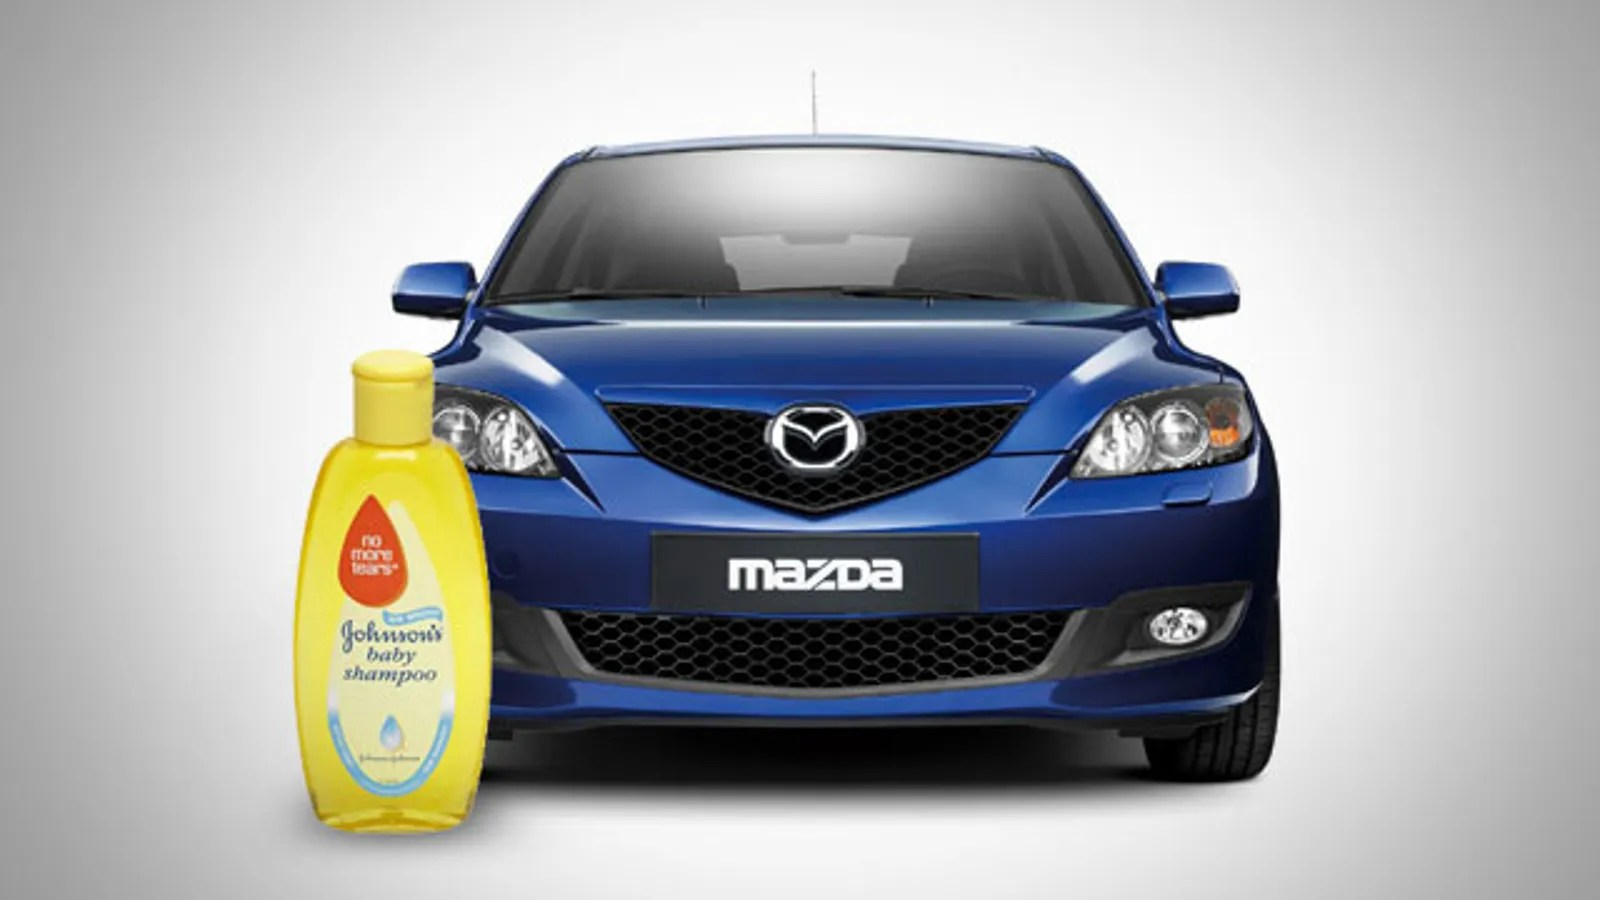 Use Shampoo Baking Soda And Water To Fully Clean Your Car